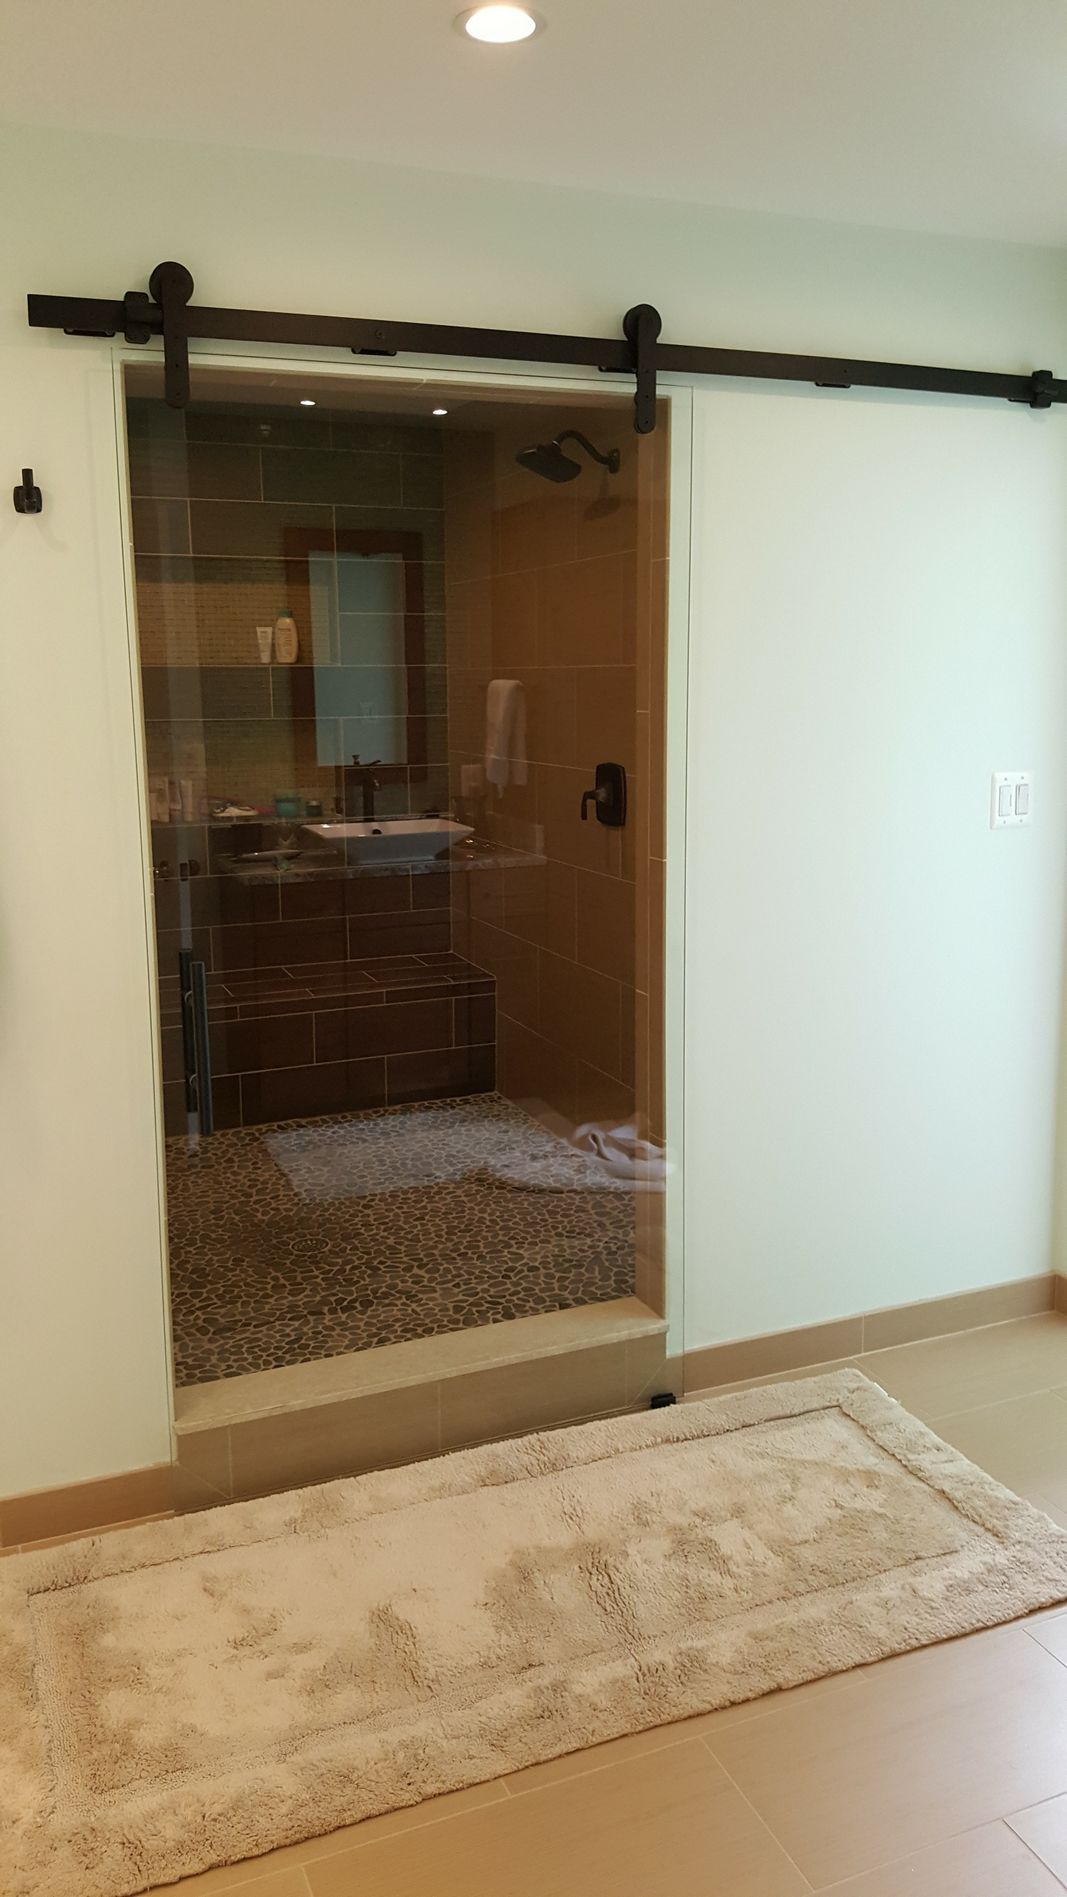 Tub And Shower Enclosure Photos Mirrors And More Inc